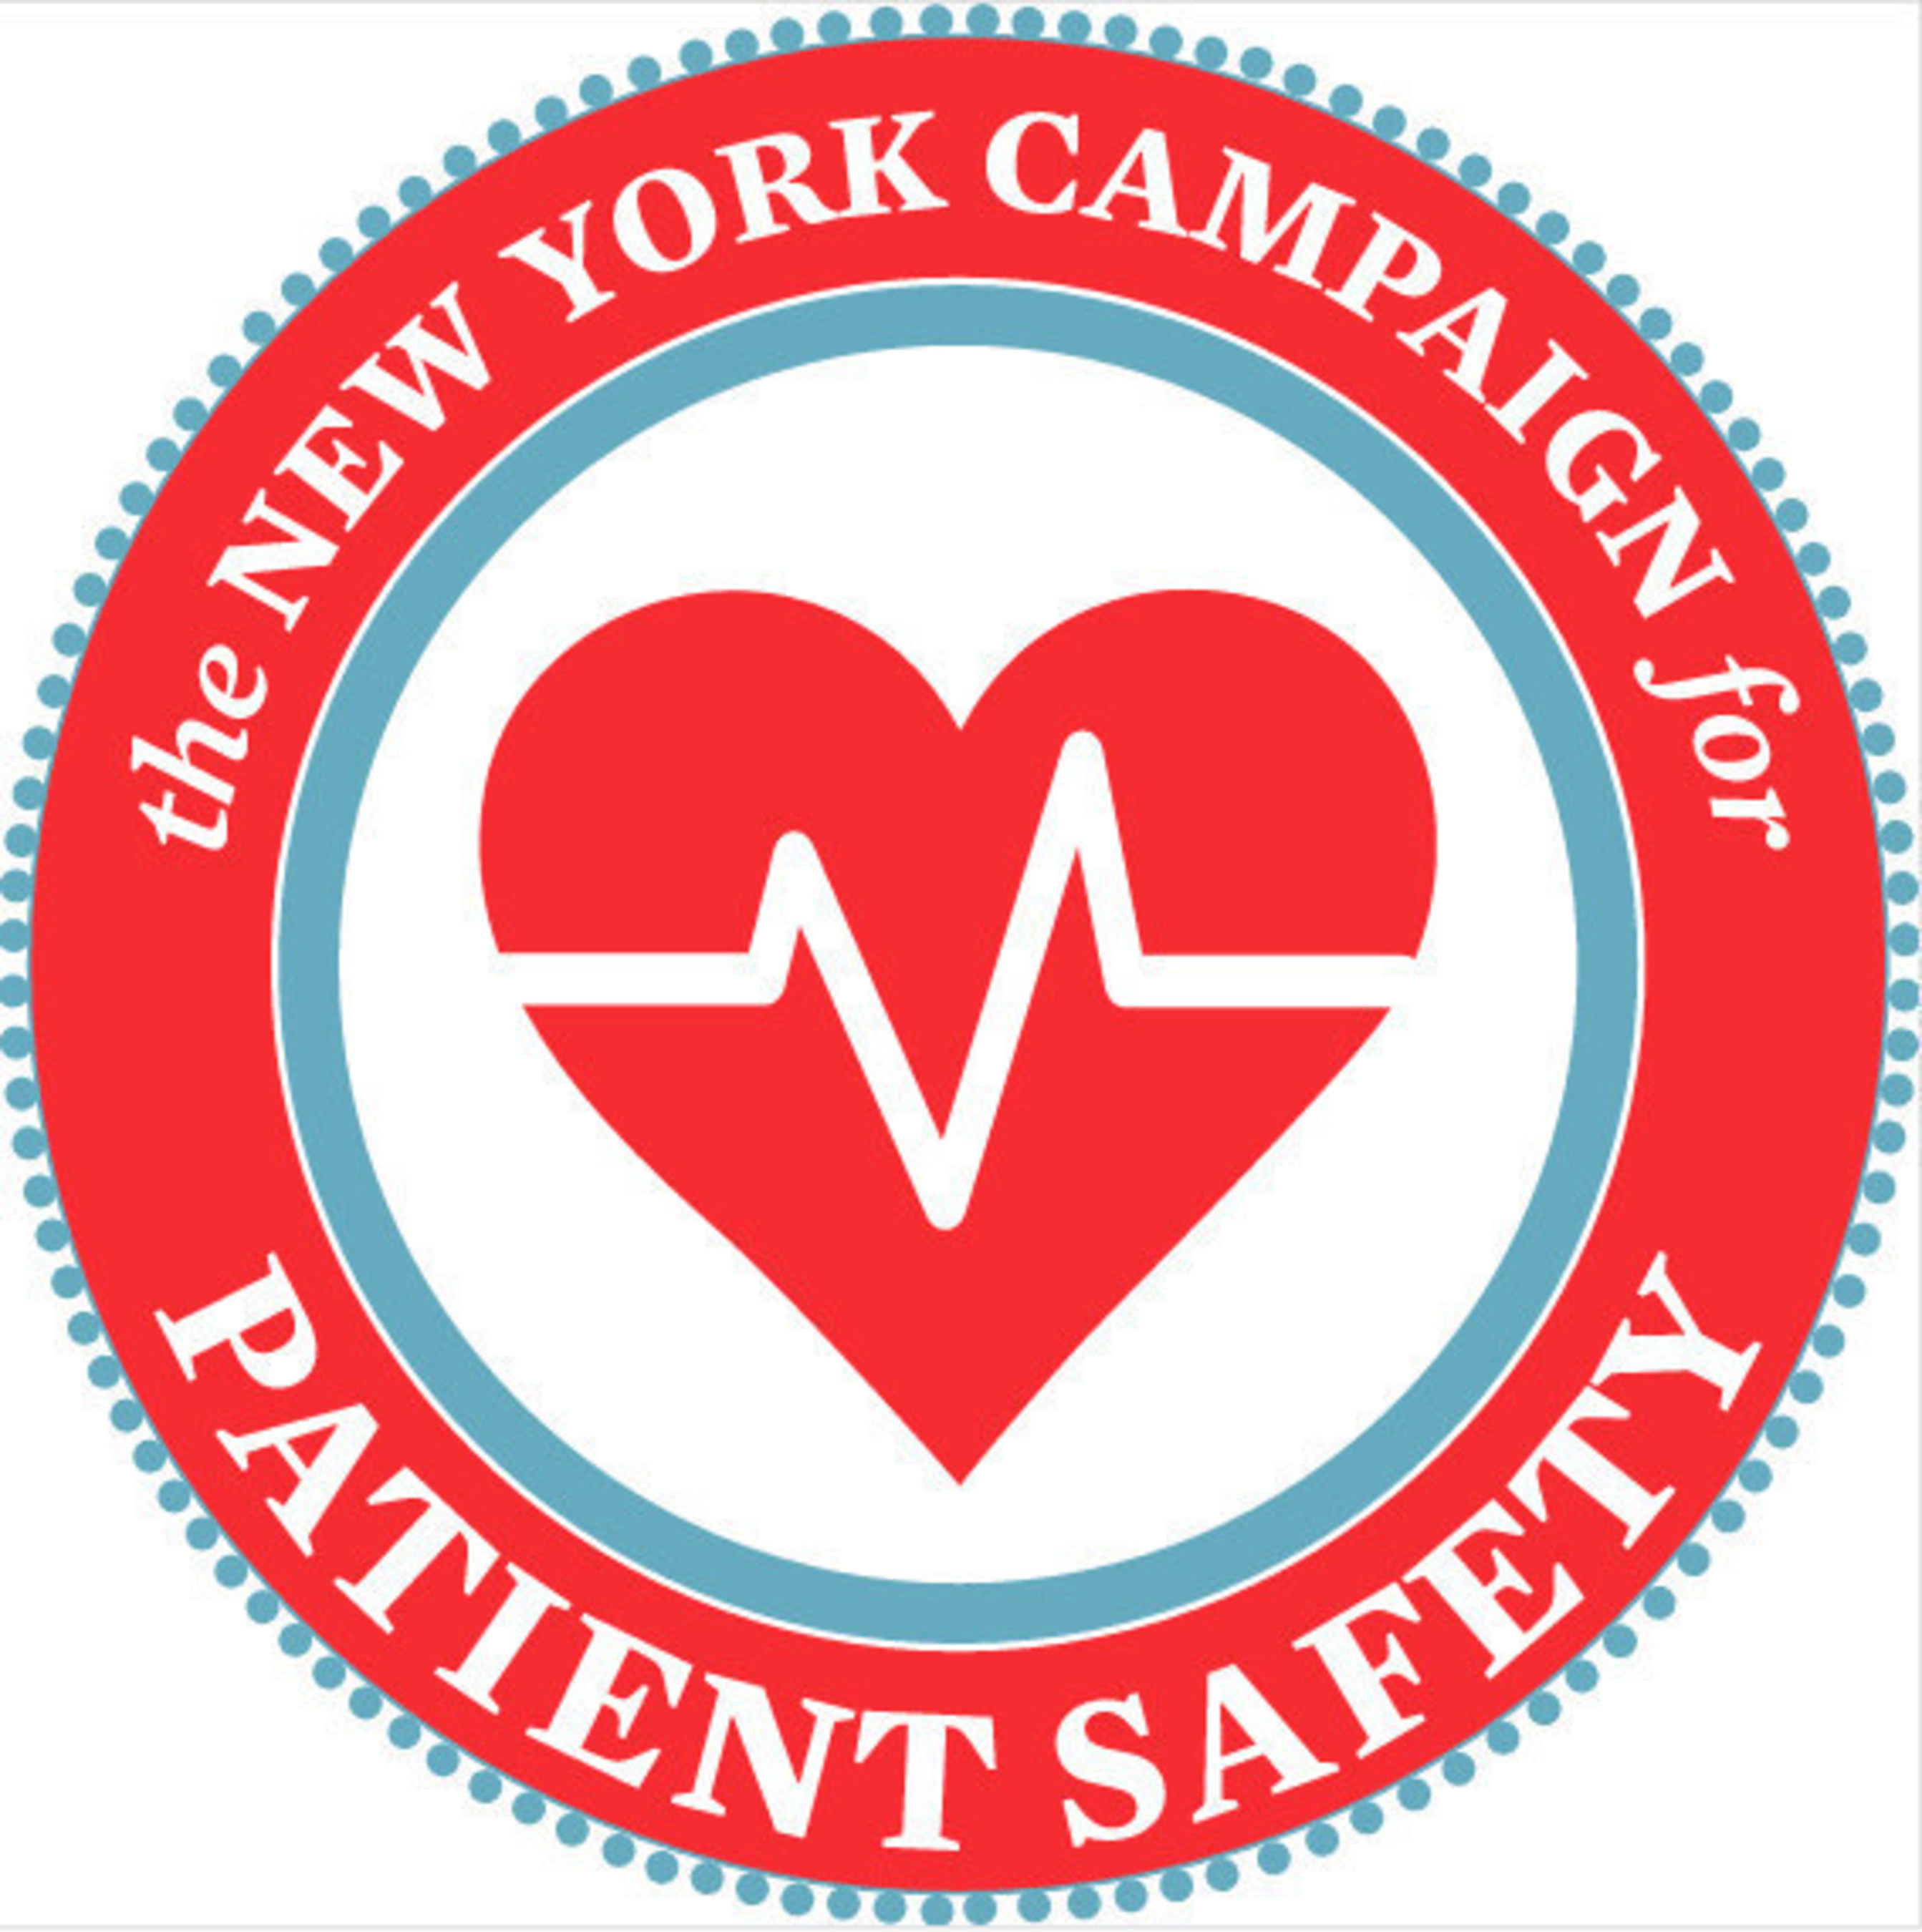 NY Campaign for Patient Safety